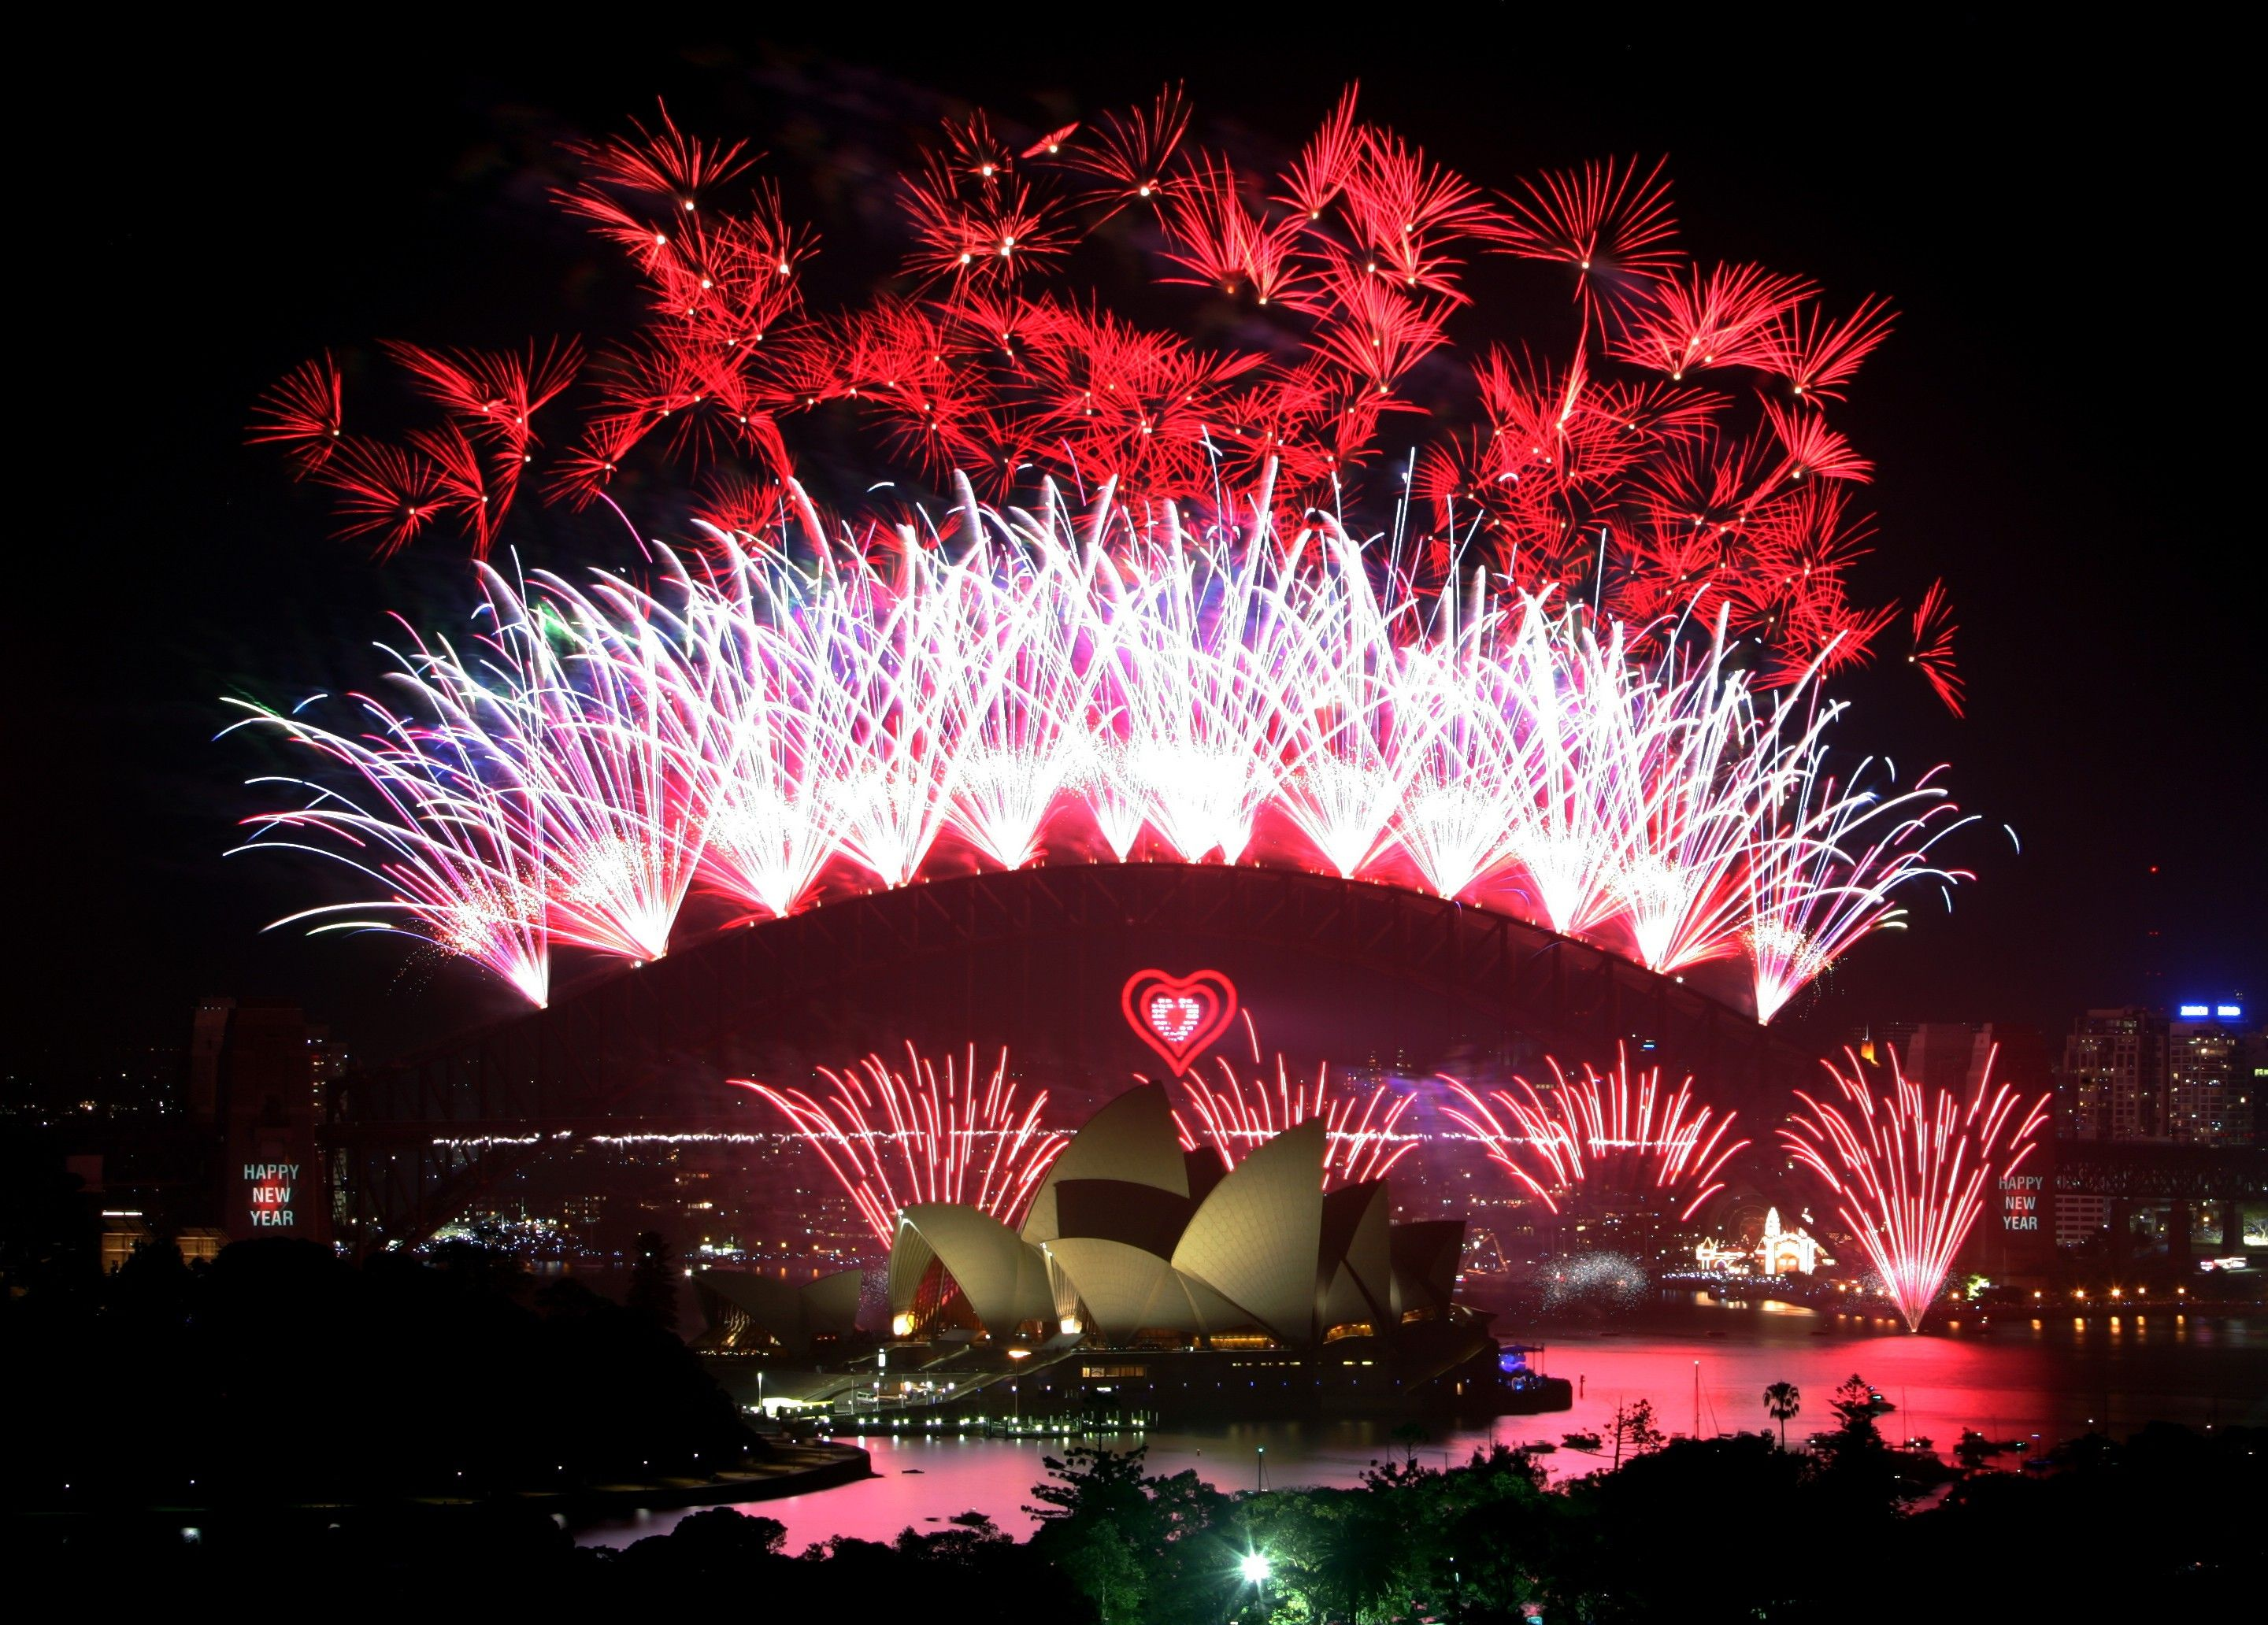 2005 Sydney New Year's Eve Heart of the Harbour. Heart of